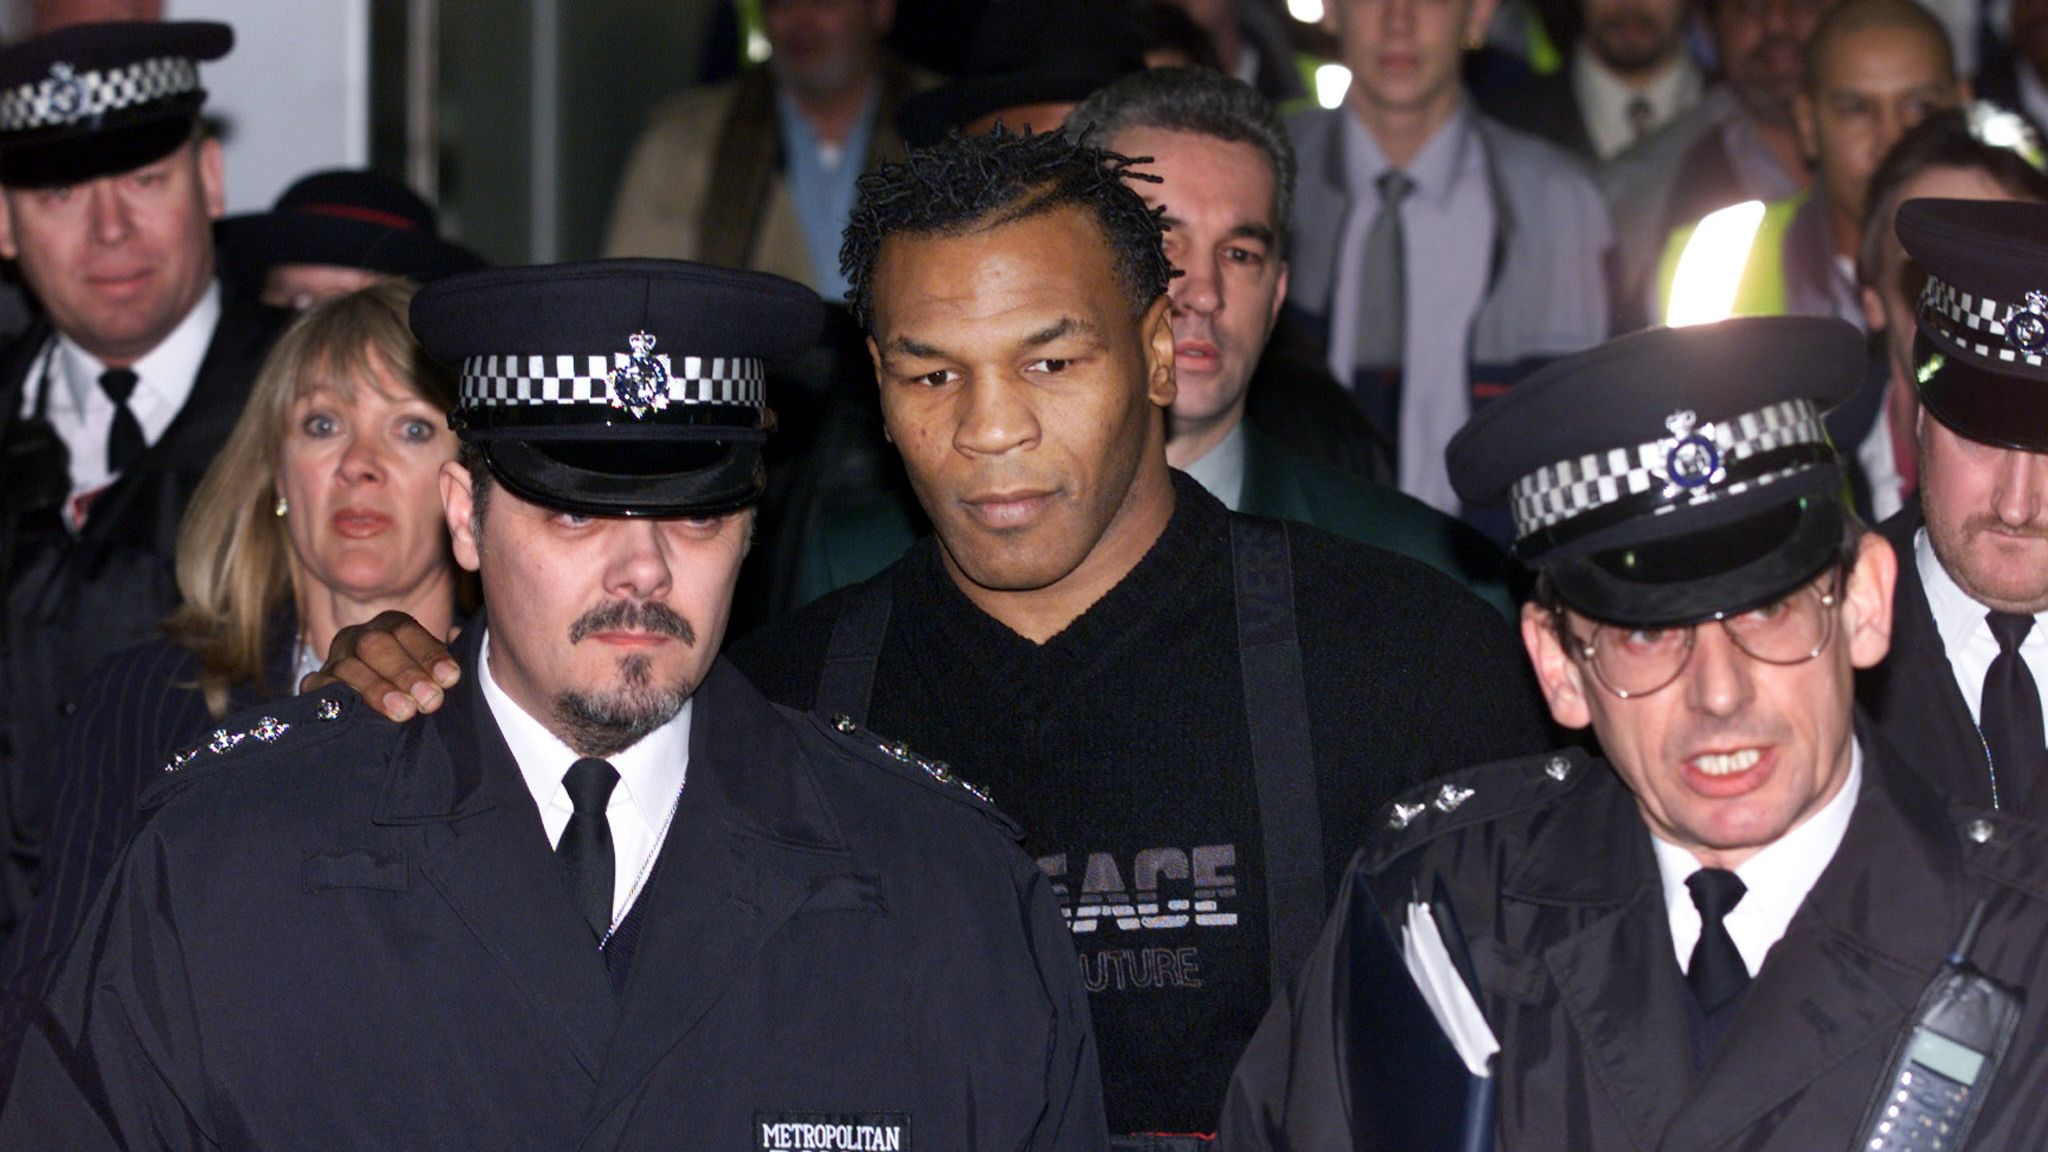 Mike Tyson out of control 20 years ago: The Kray Twins, Piers Morgan, Jack Straw – his unforgettable British chapter